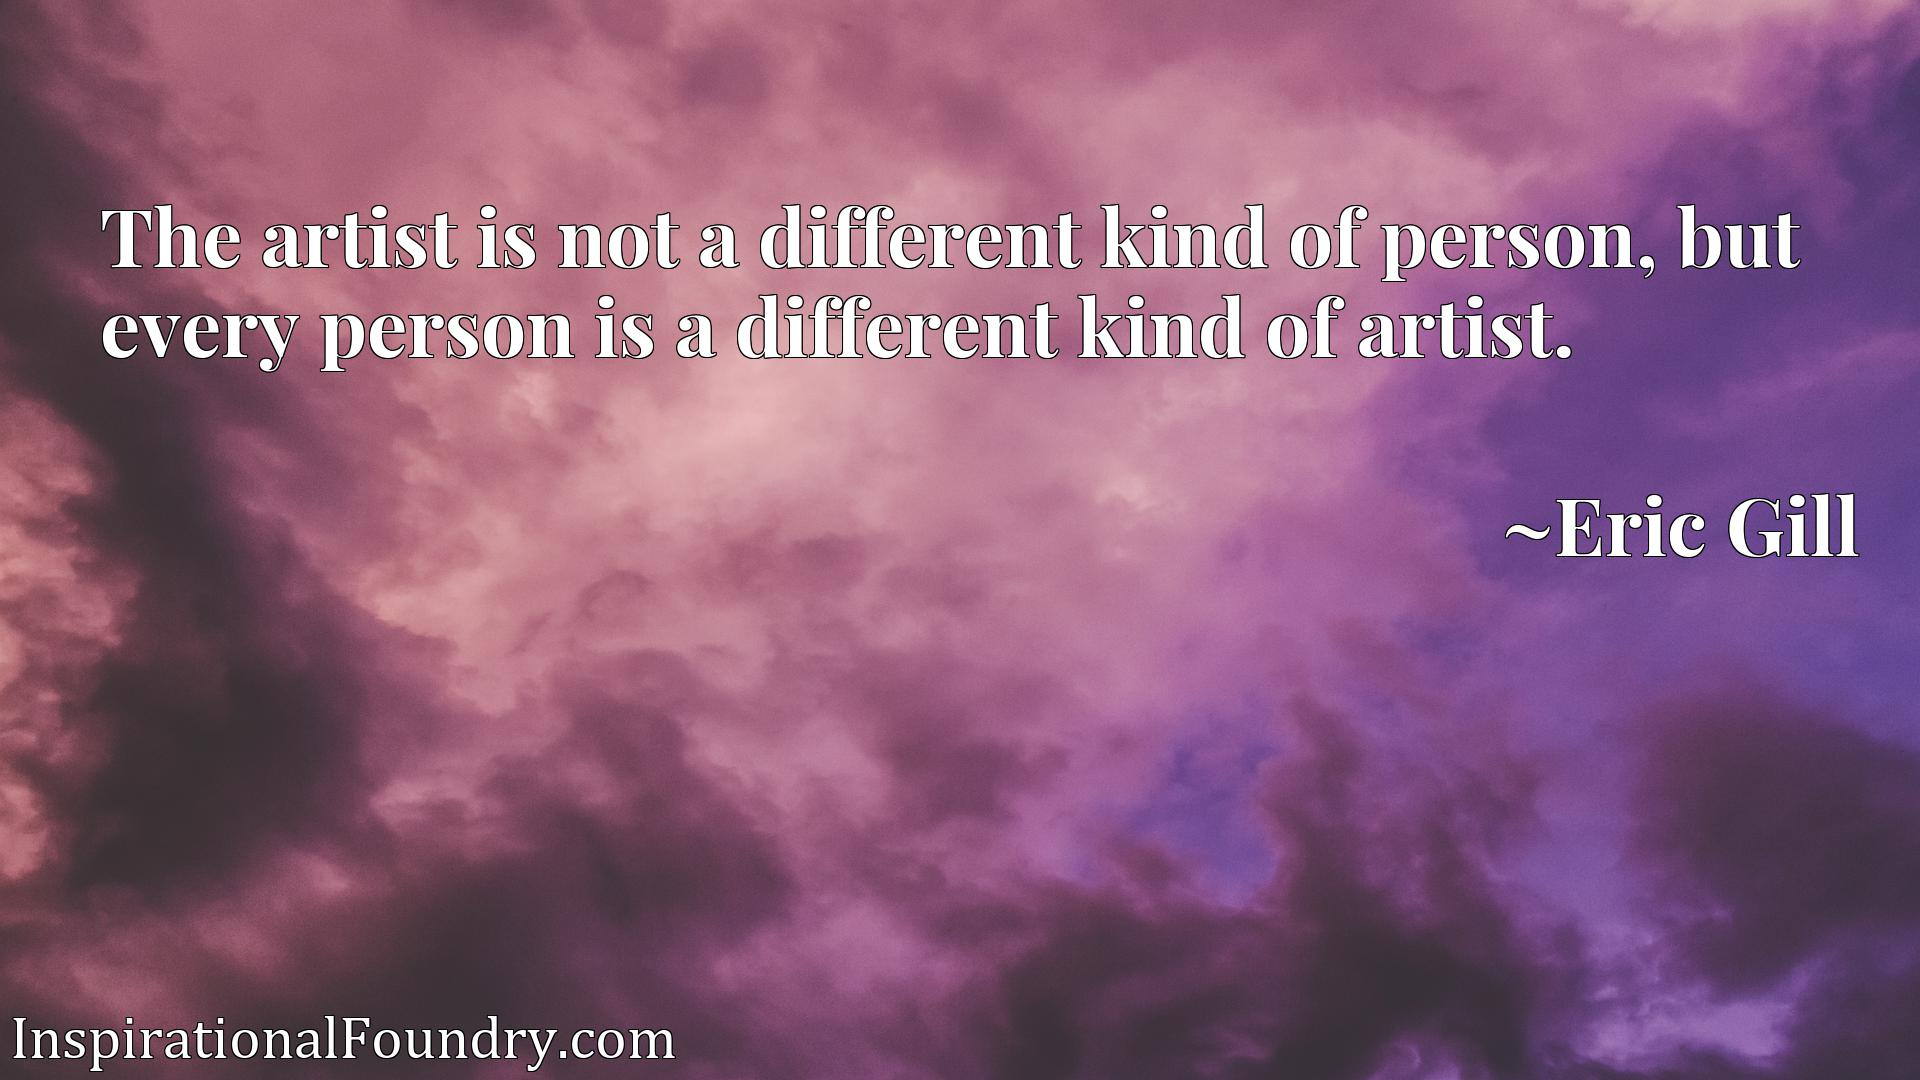 The artist is not a different kind of person, but every person is a different kind of artist.